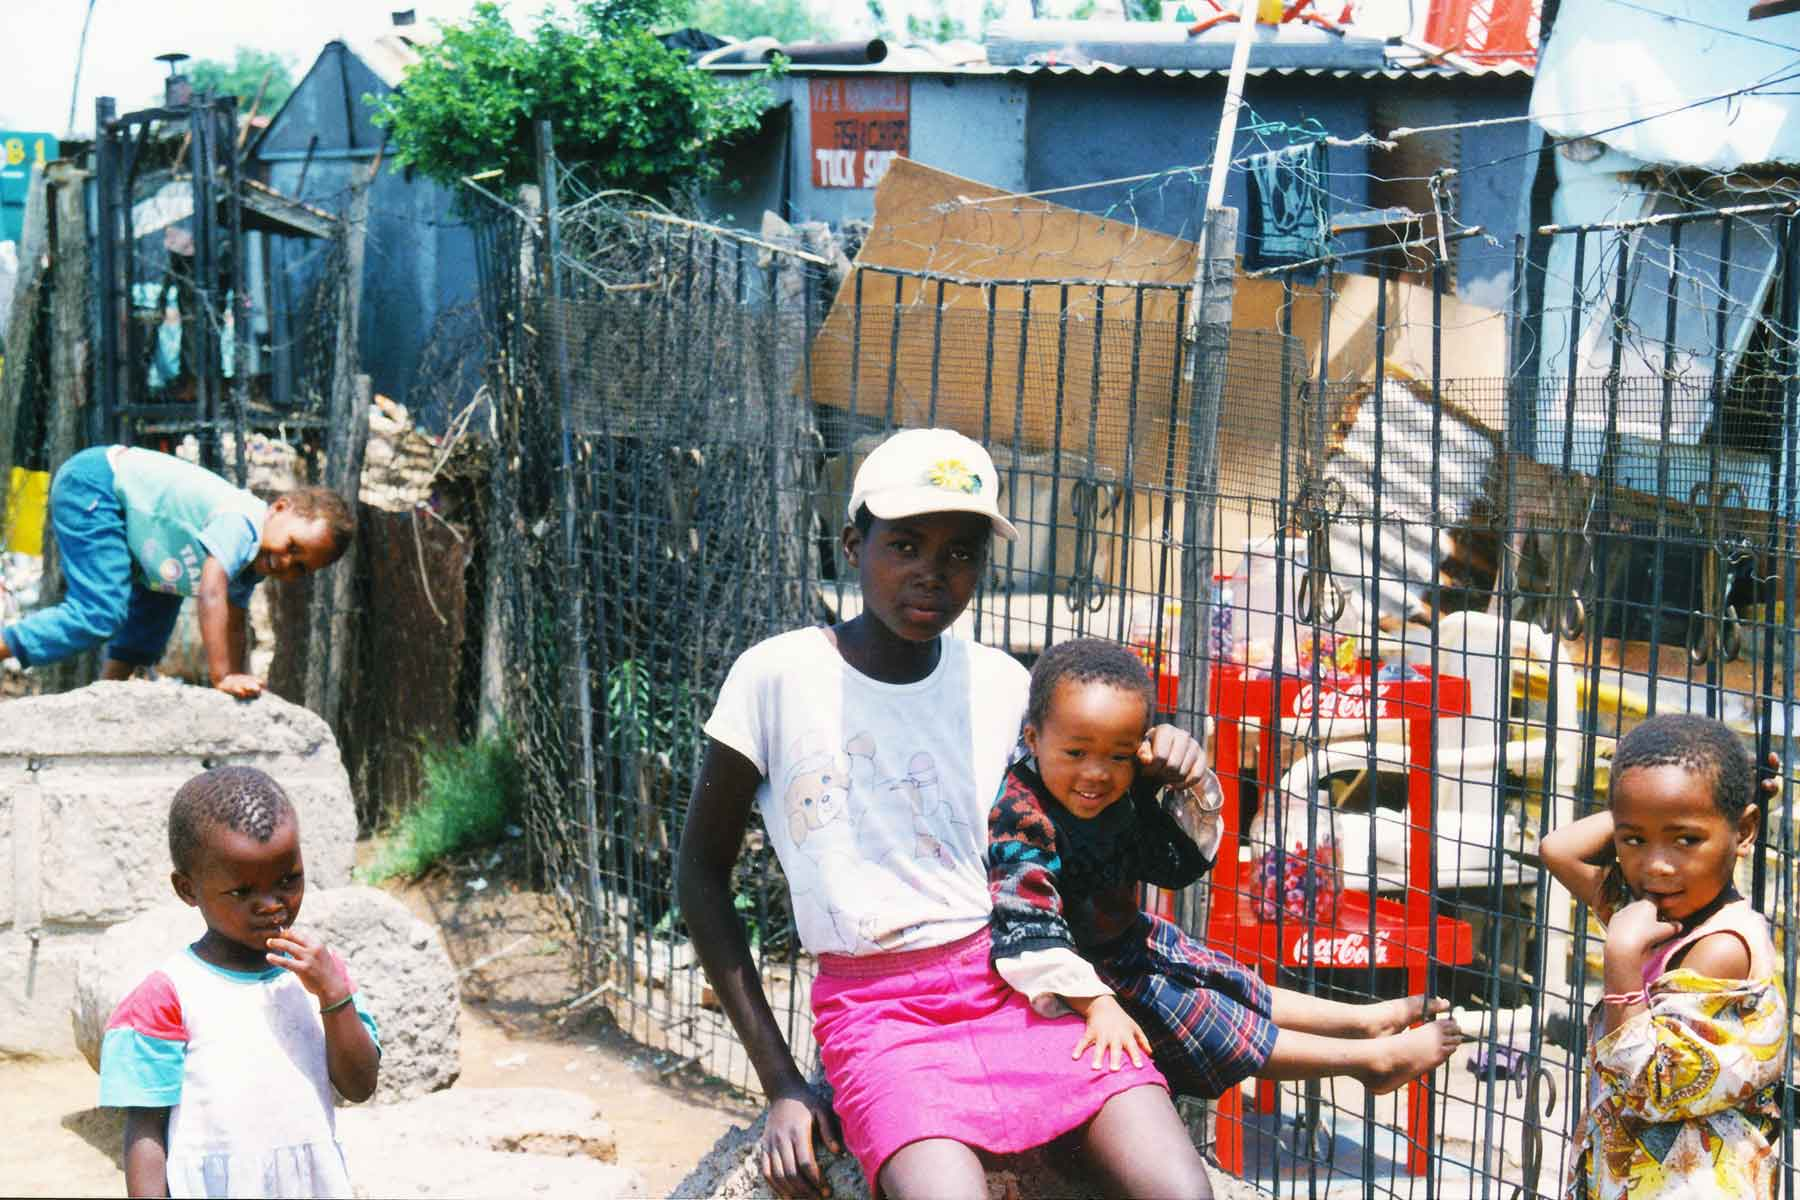 Soweto   South Africa   Steven Andrew Martin   Study Abroad Photo Journal   Dr. Steven A. Martin